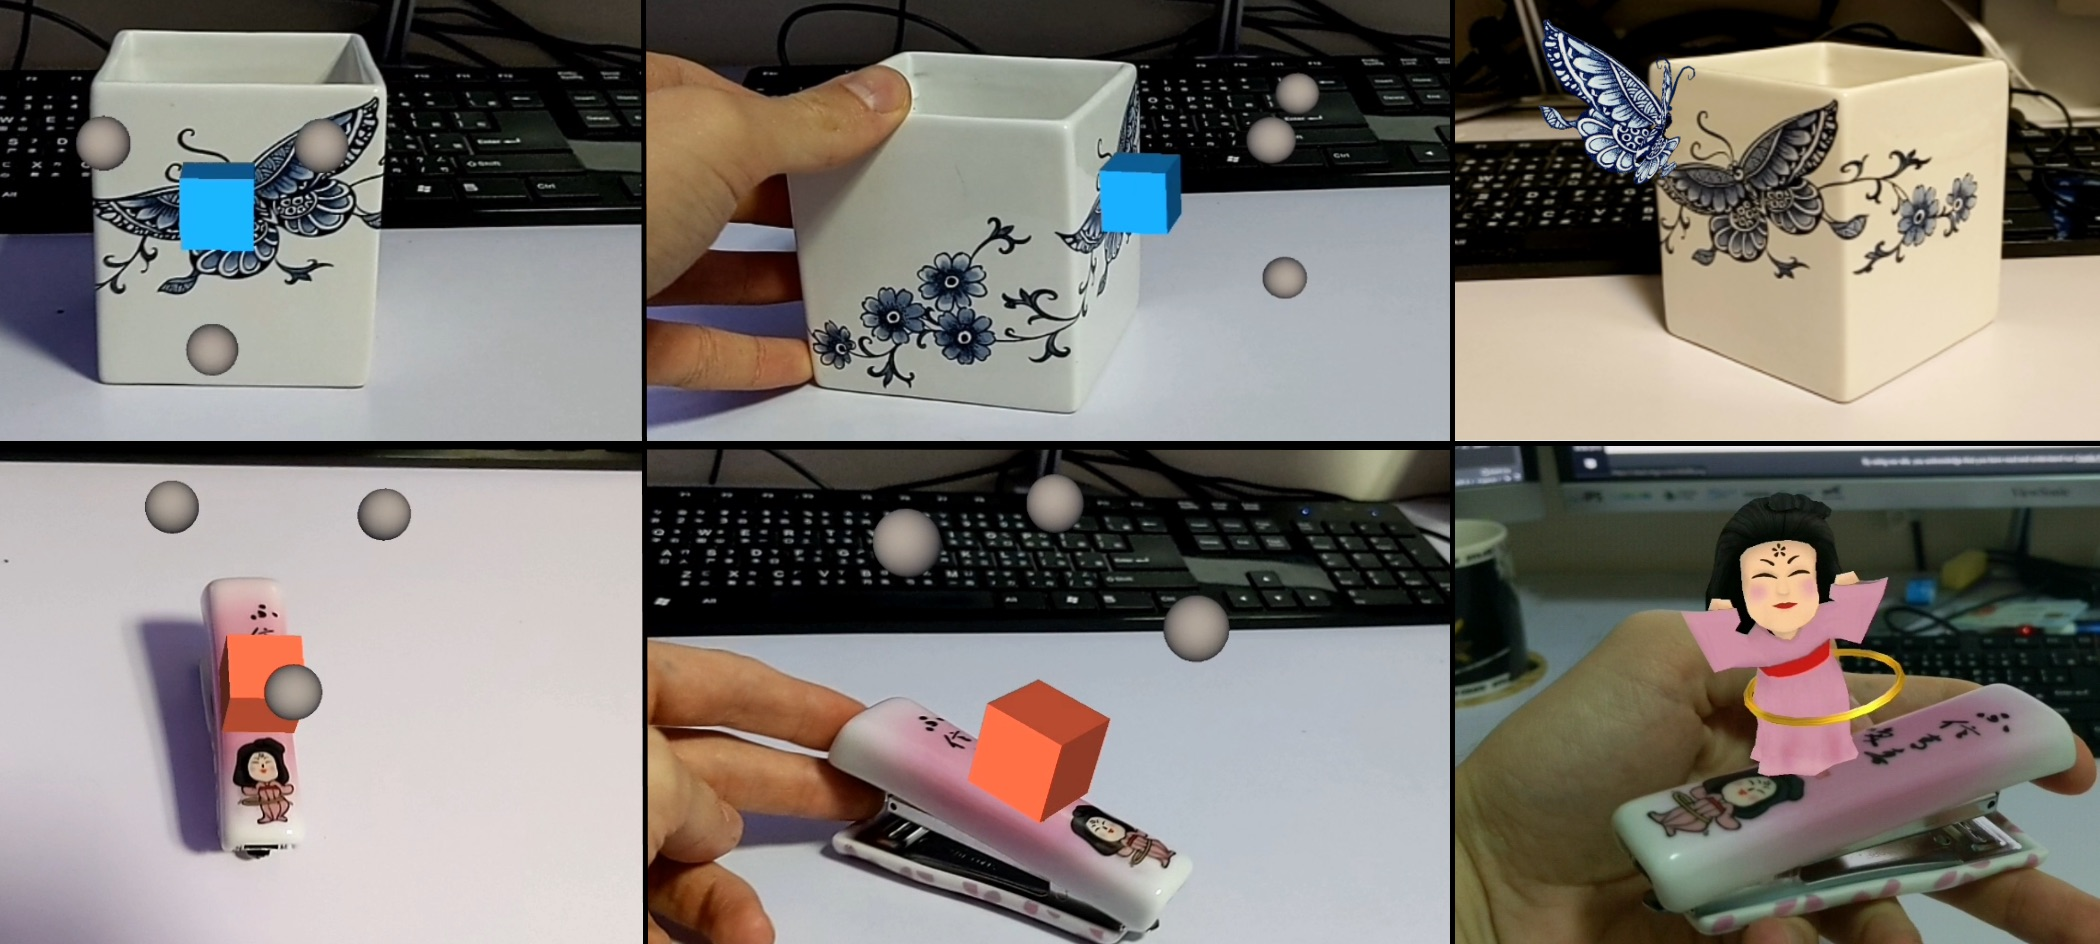 Augmented Reality SDK for Real Time Image Target Recognition and 3D Object Tracking